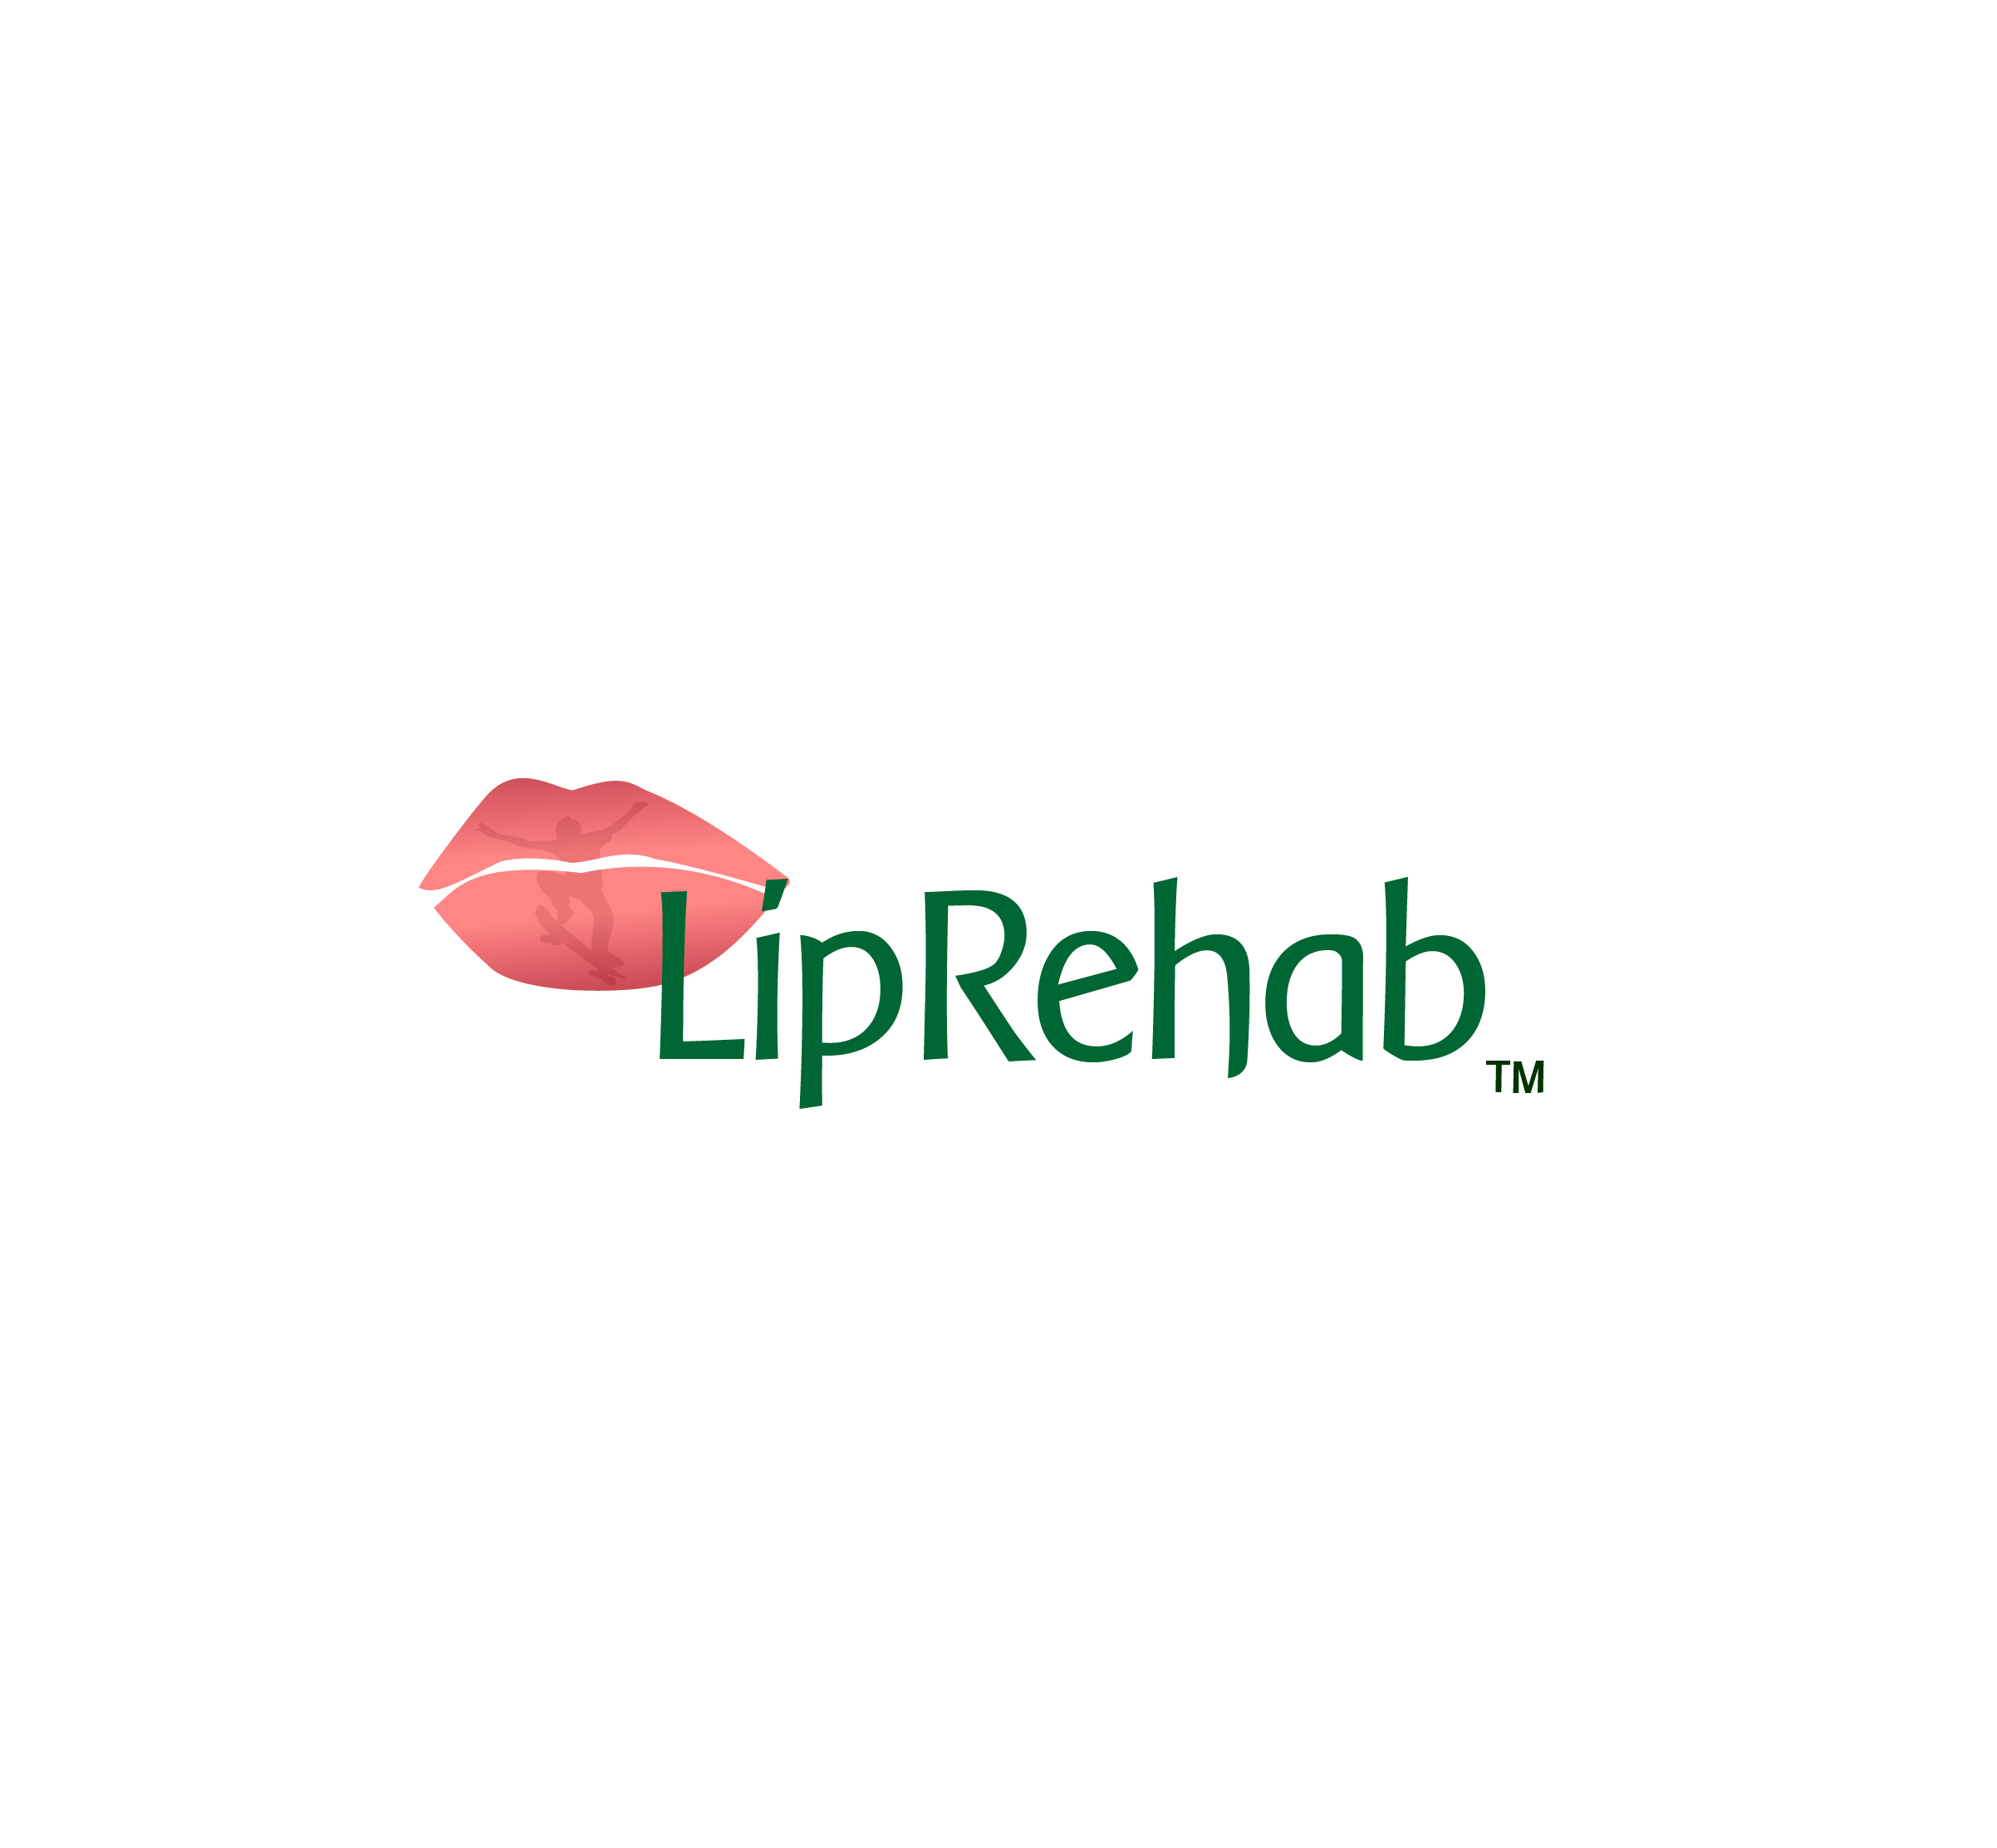 Logo Design by Nancy Grant - Entry No. 90 in the Logo Design Contest Creative Logo Design for Lip Rehab.